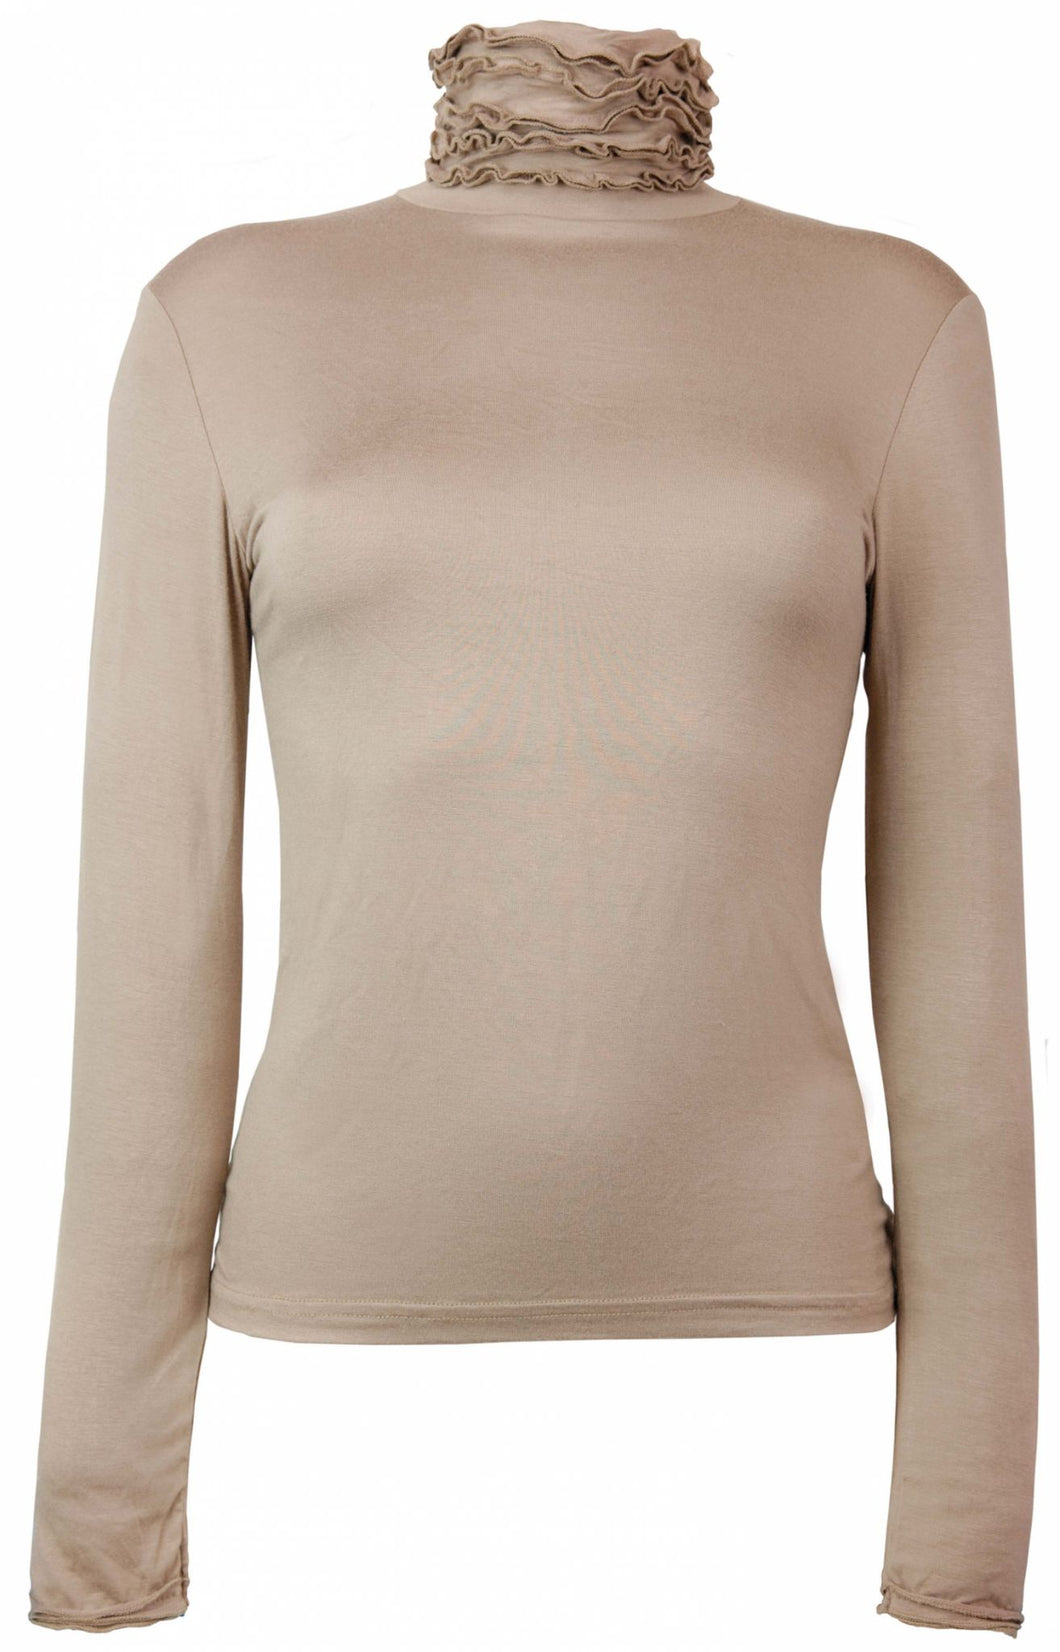 Best selling fine knit Ruffle Polo Neck Sweater in Beige by Sally Allen